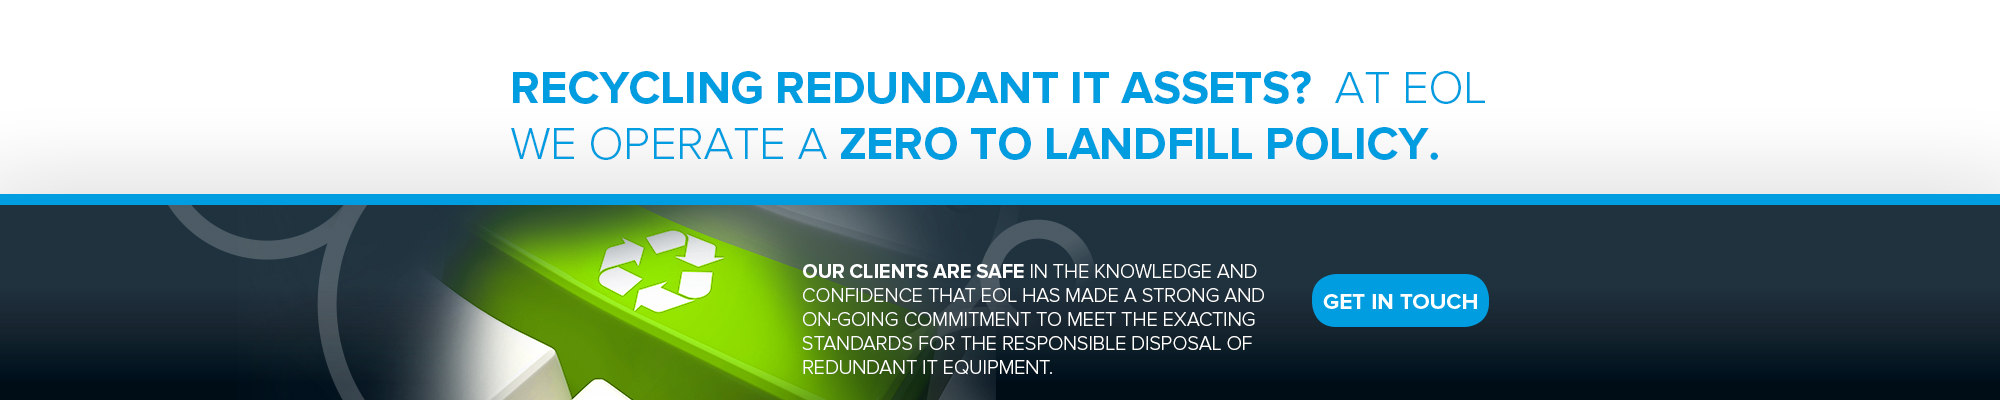 Recycling redundant IT assets? At EOL we operate a zero to landfill policy.